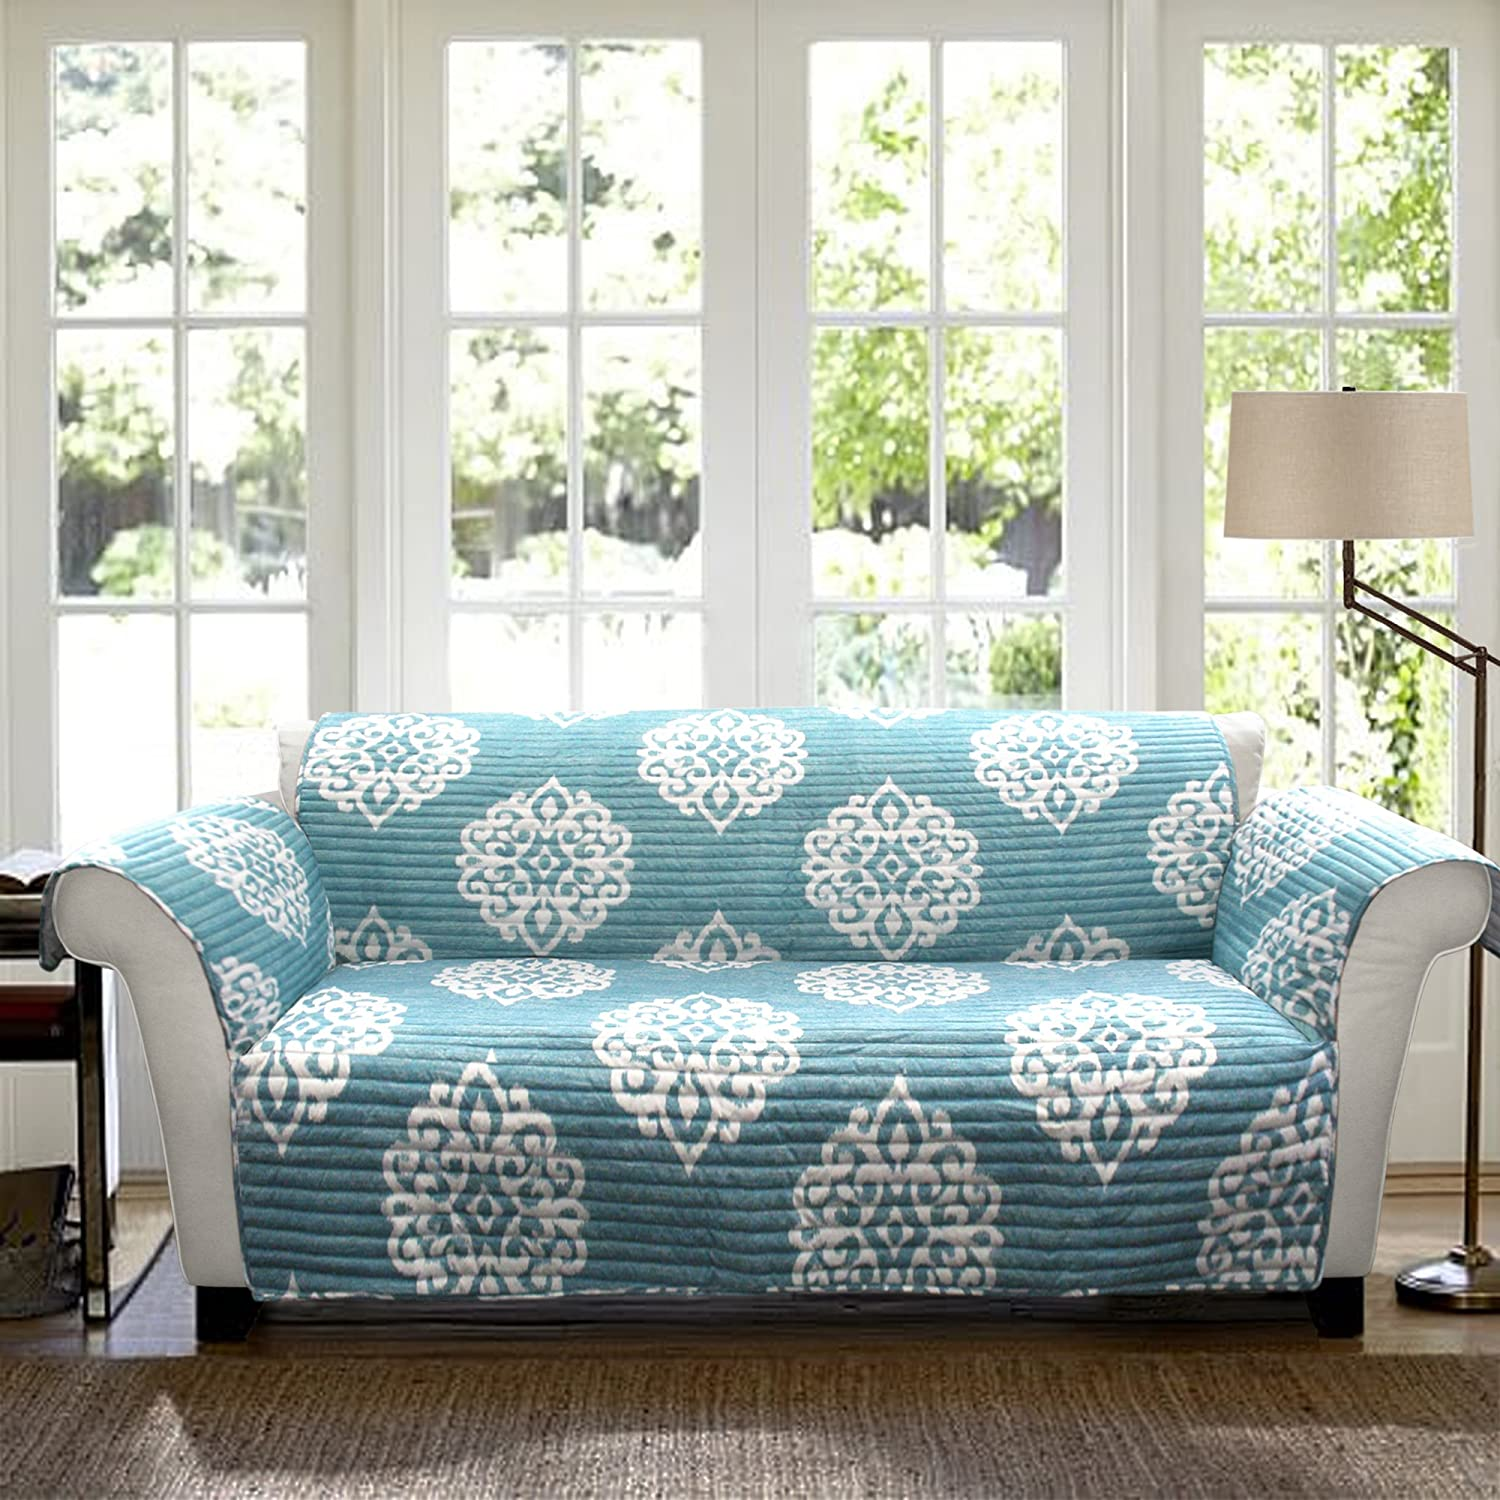 Amazon.com: Lush Decor Sohpie Slipcover/Furniture Protector for Sofa ...